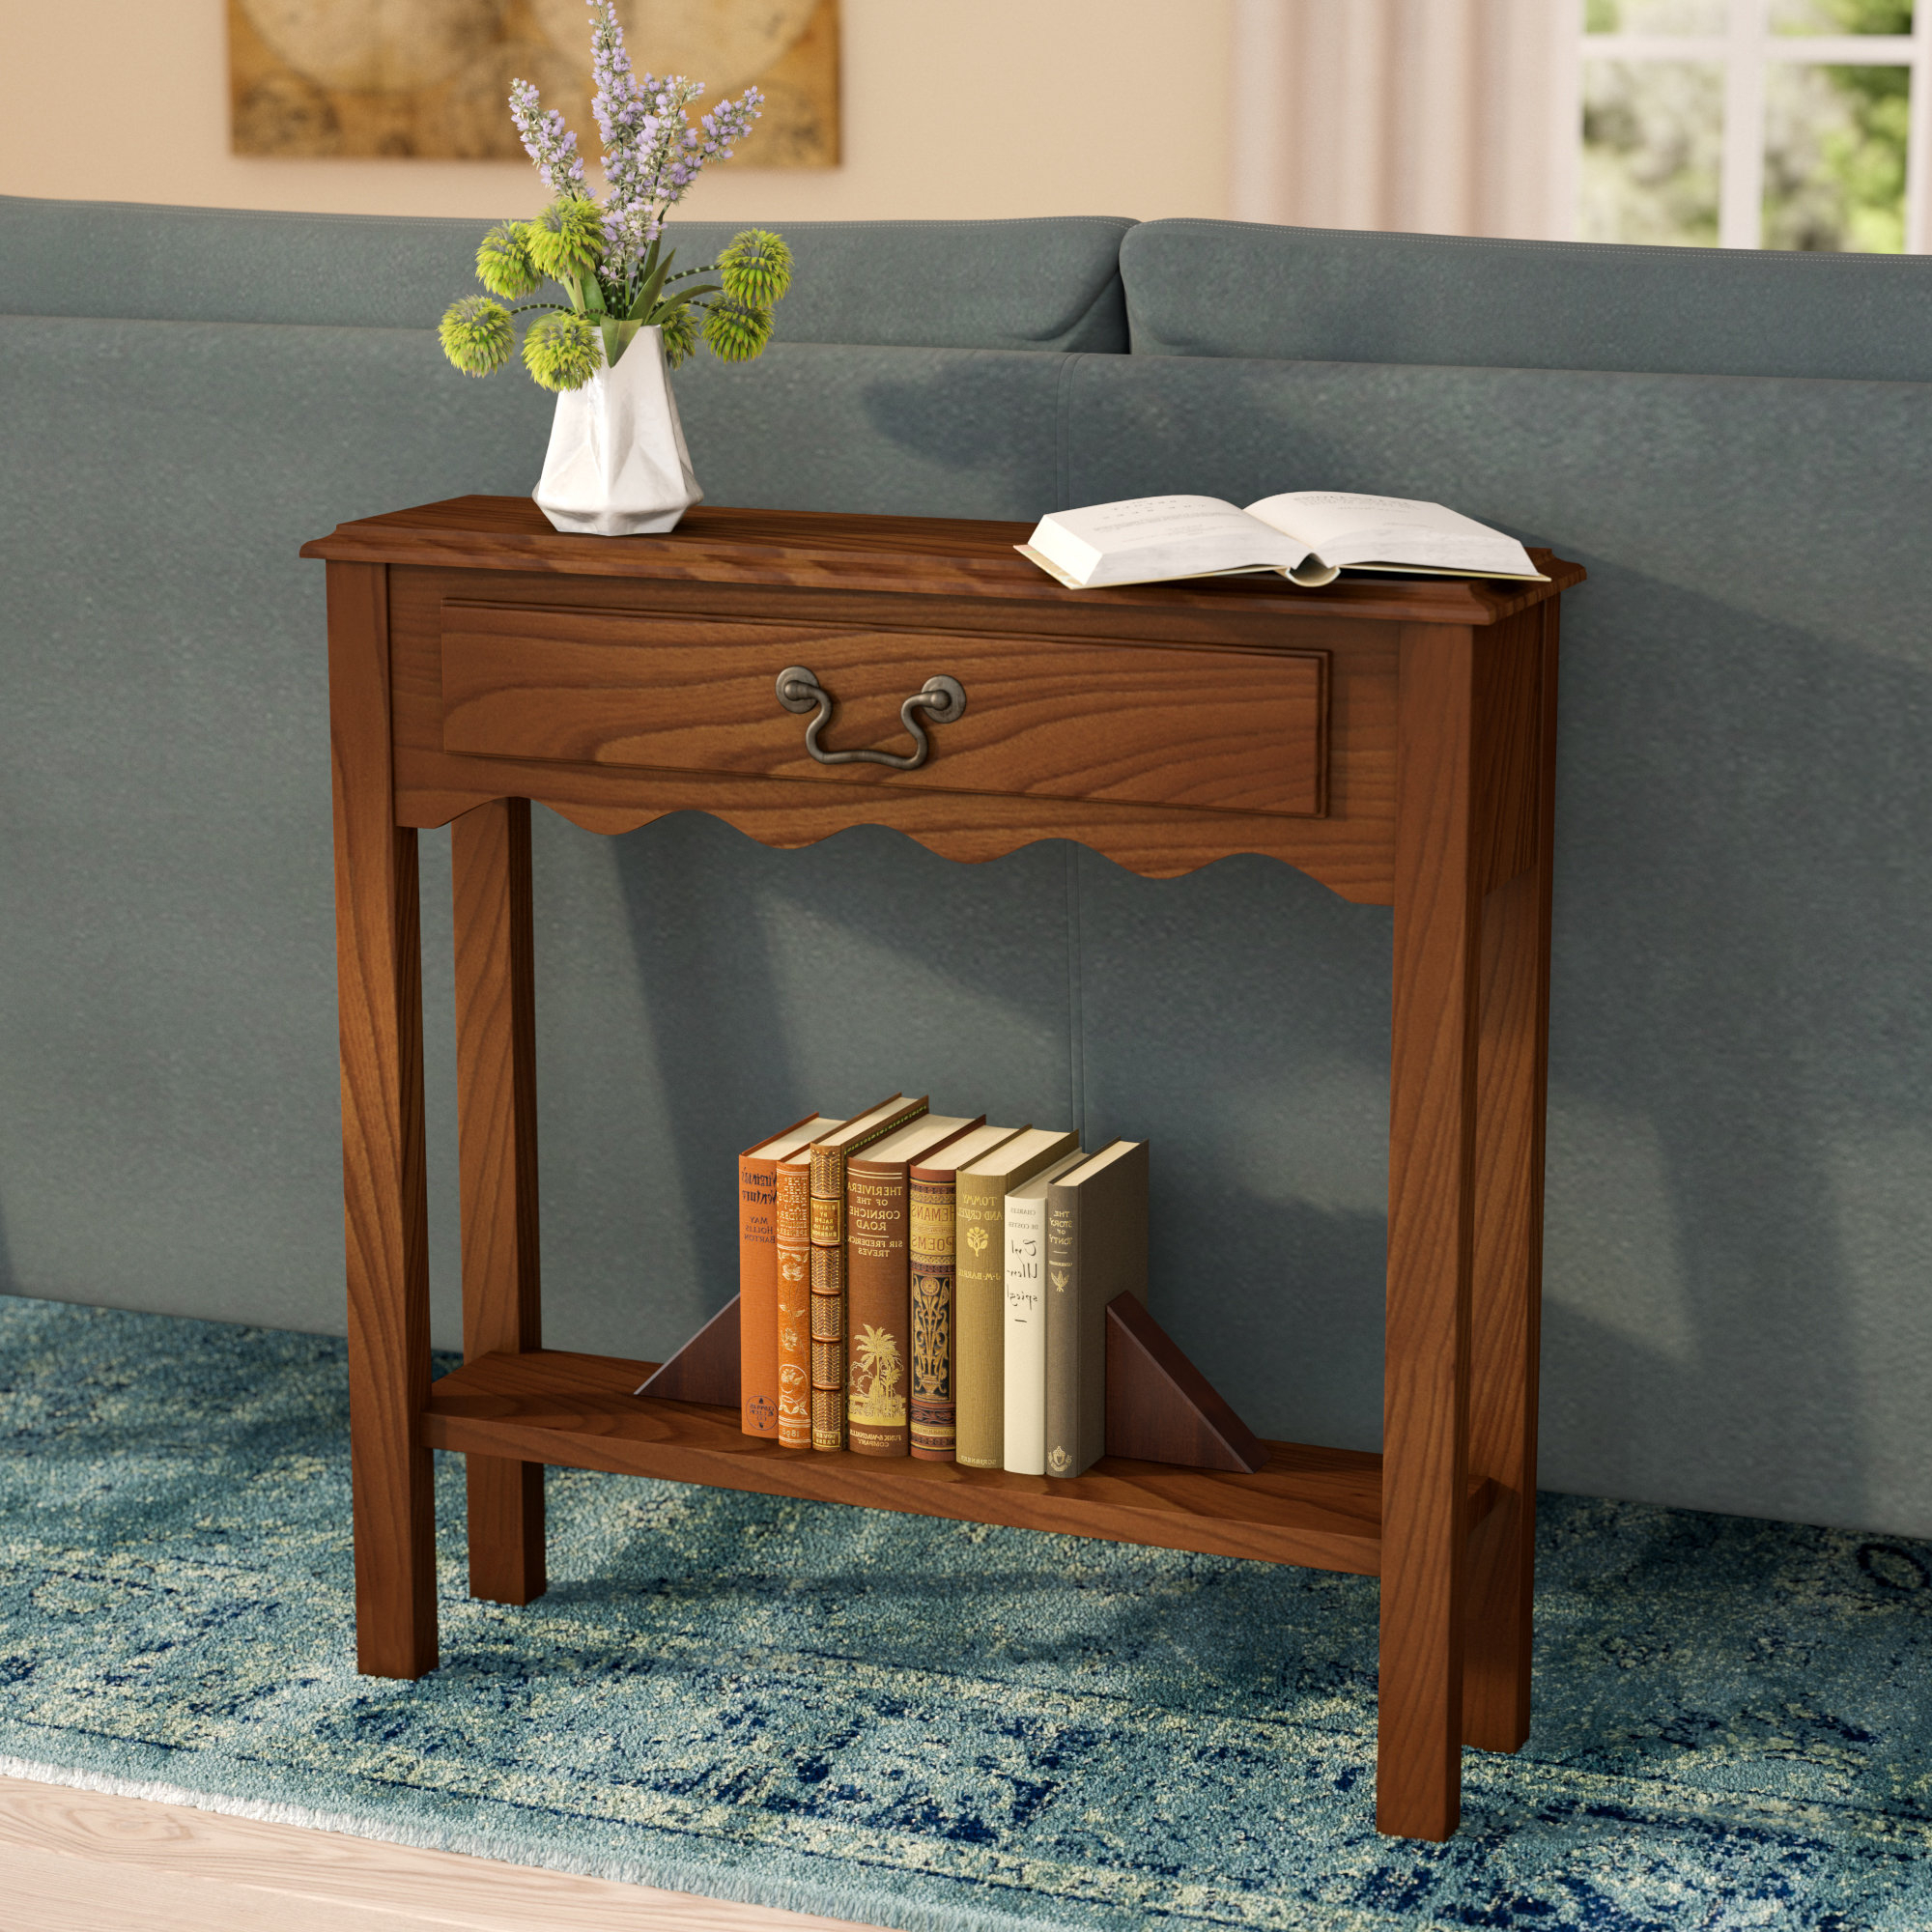 Small Corner Console Table | Wayfair In Layered Wood Small Square Console Tables (View 4 of 20)